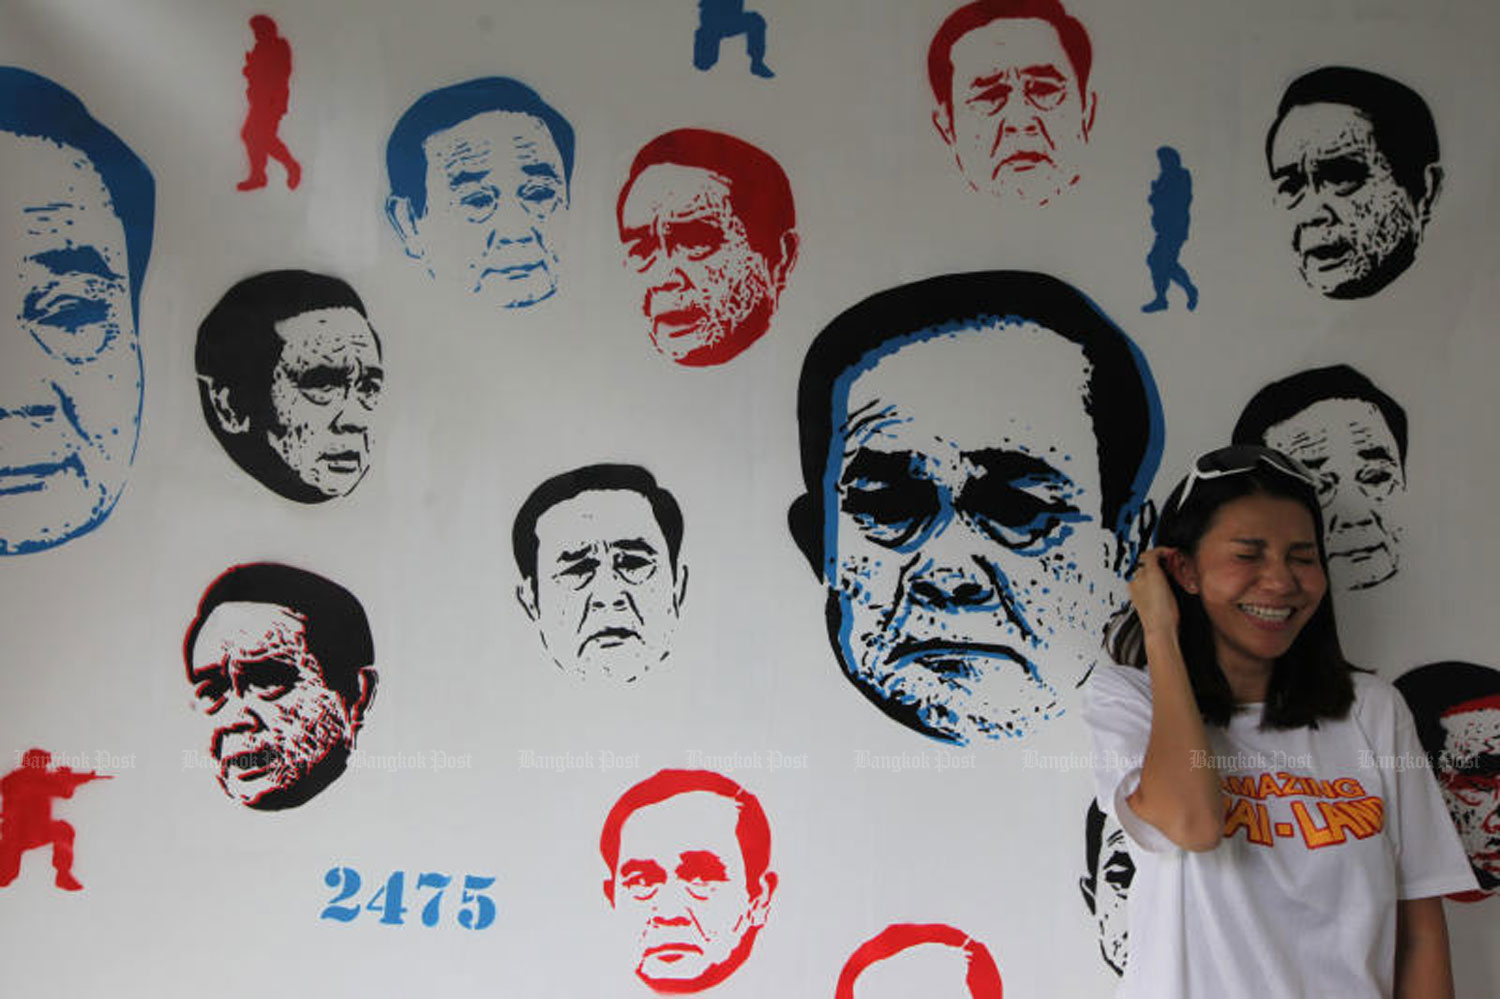 Different facial emotions of Prime Minister Prayut Chan-o-cha are painted under a theme 'Uncensored' by a group of artists named 'Headache Stencil.' The one-day exhibition was held at The Jam Factory on Charoen Nakhon Road in Bangkok on Sunday. (Photo by Wichan Charoenkiatpakul)